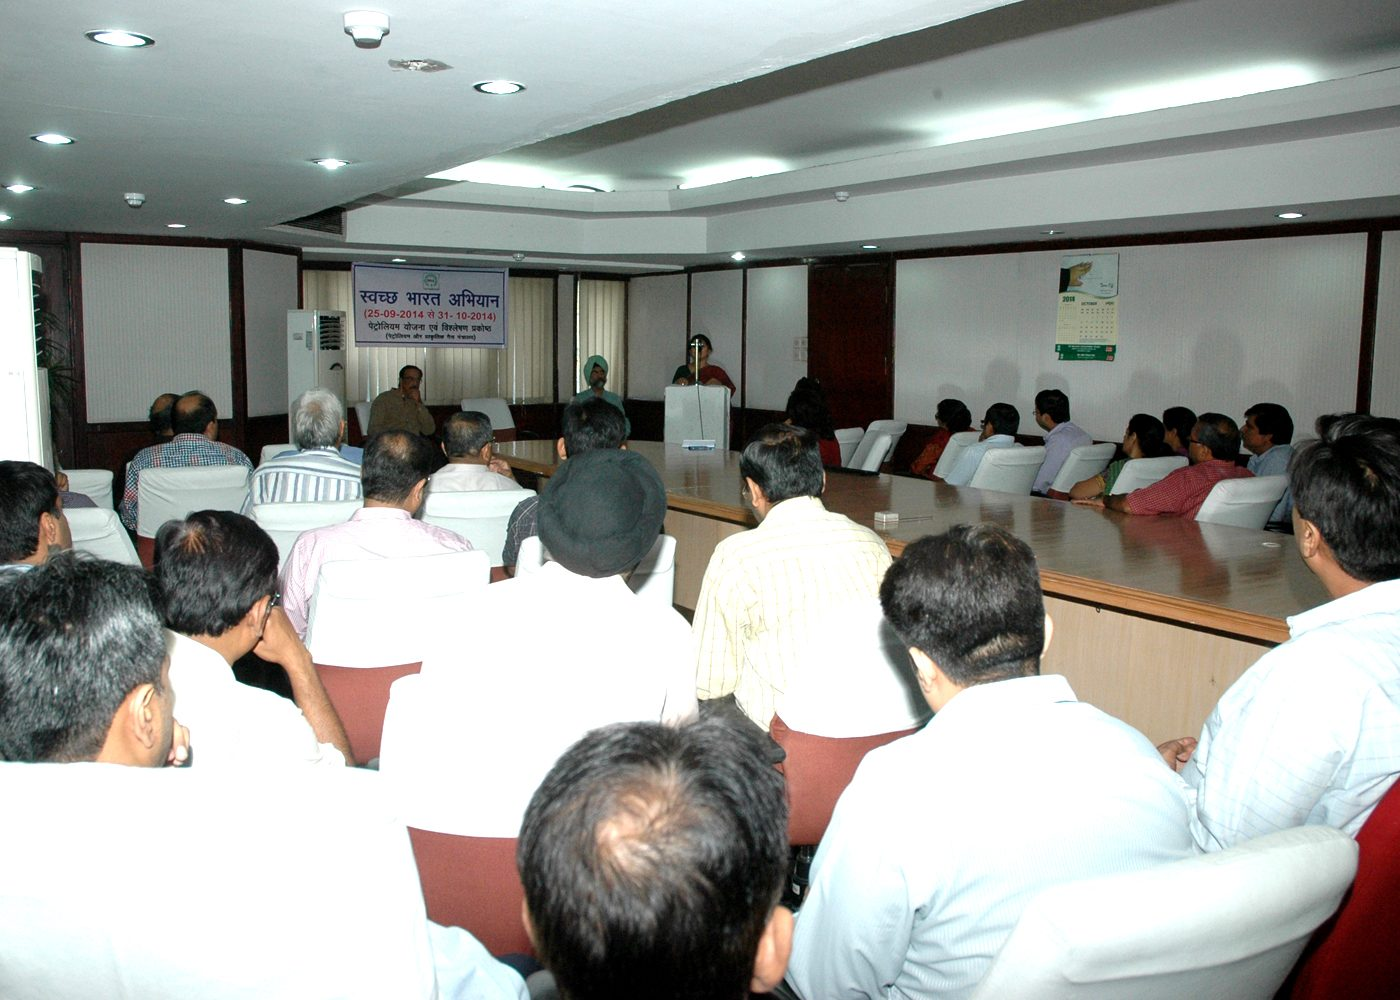 Ms Atreyee Das DG PPAC addressing the employees on the occasion of Swachh Bharat Abhiyaan Photo Gallery